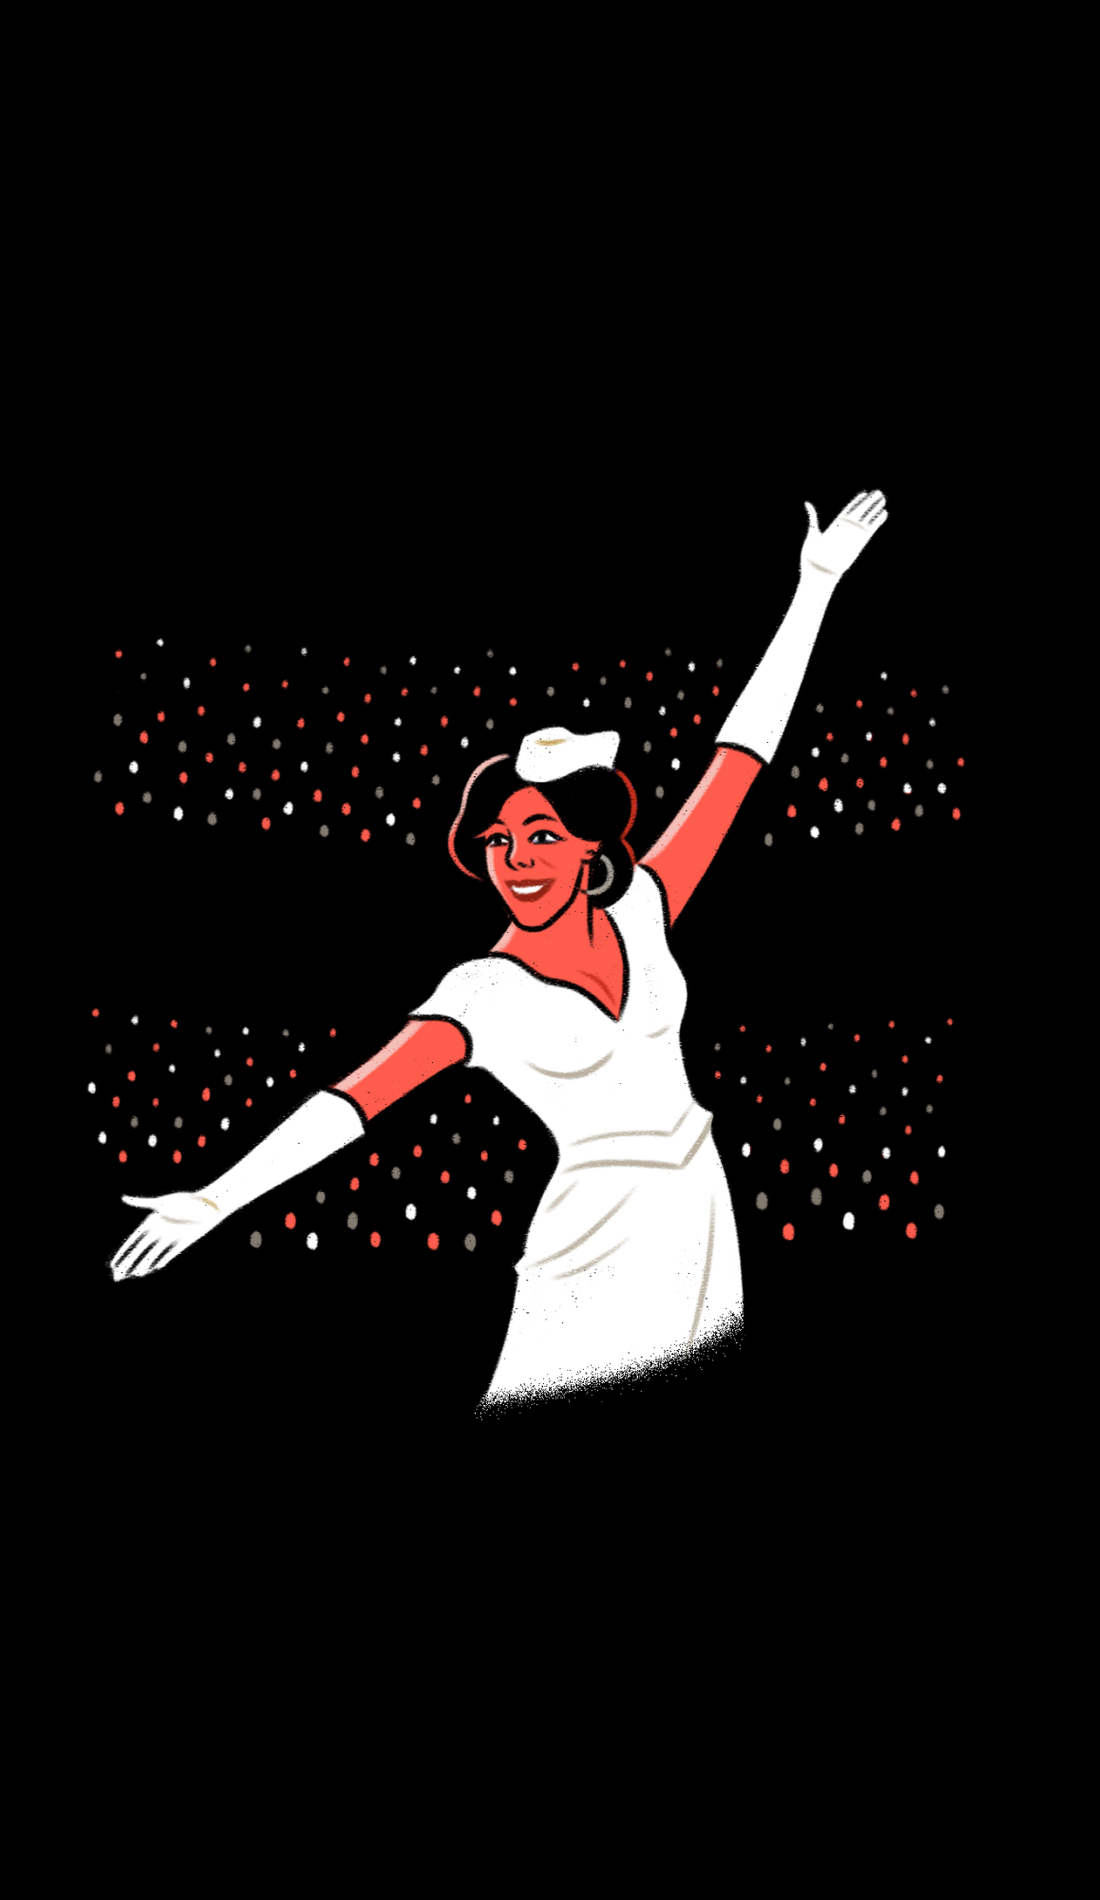 A Hello, Dolly! live event